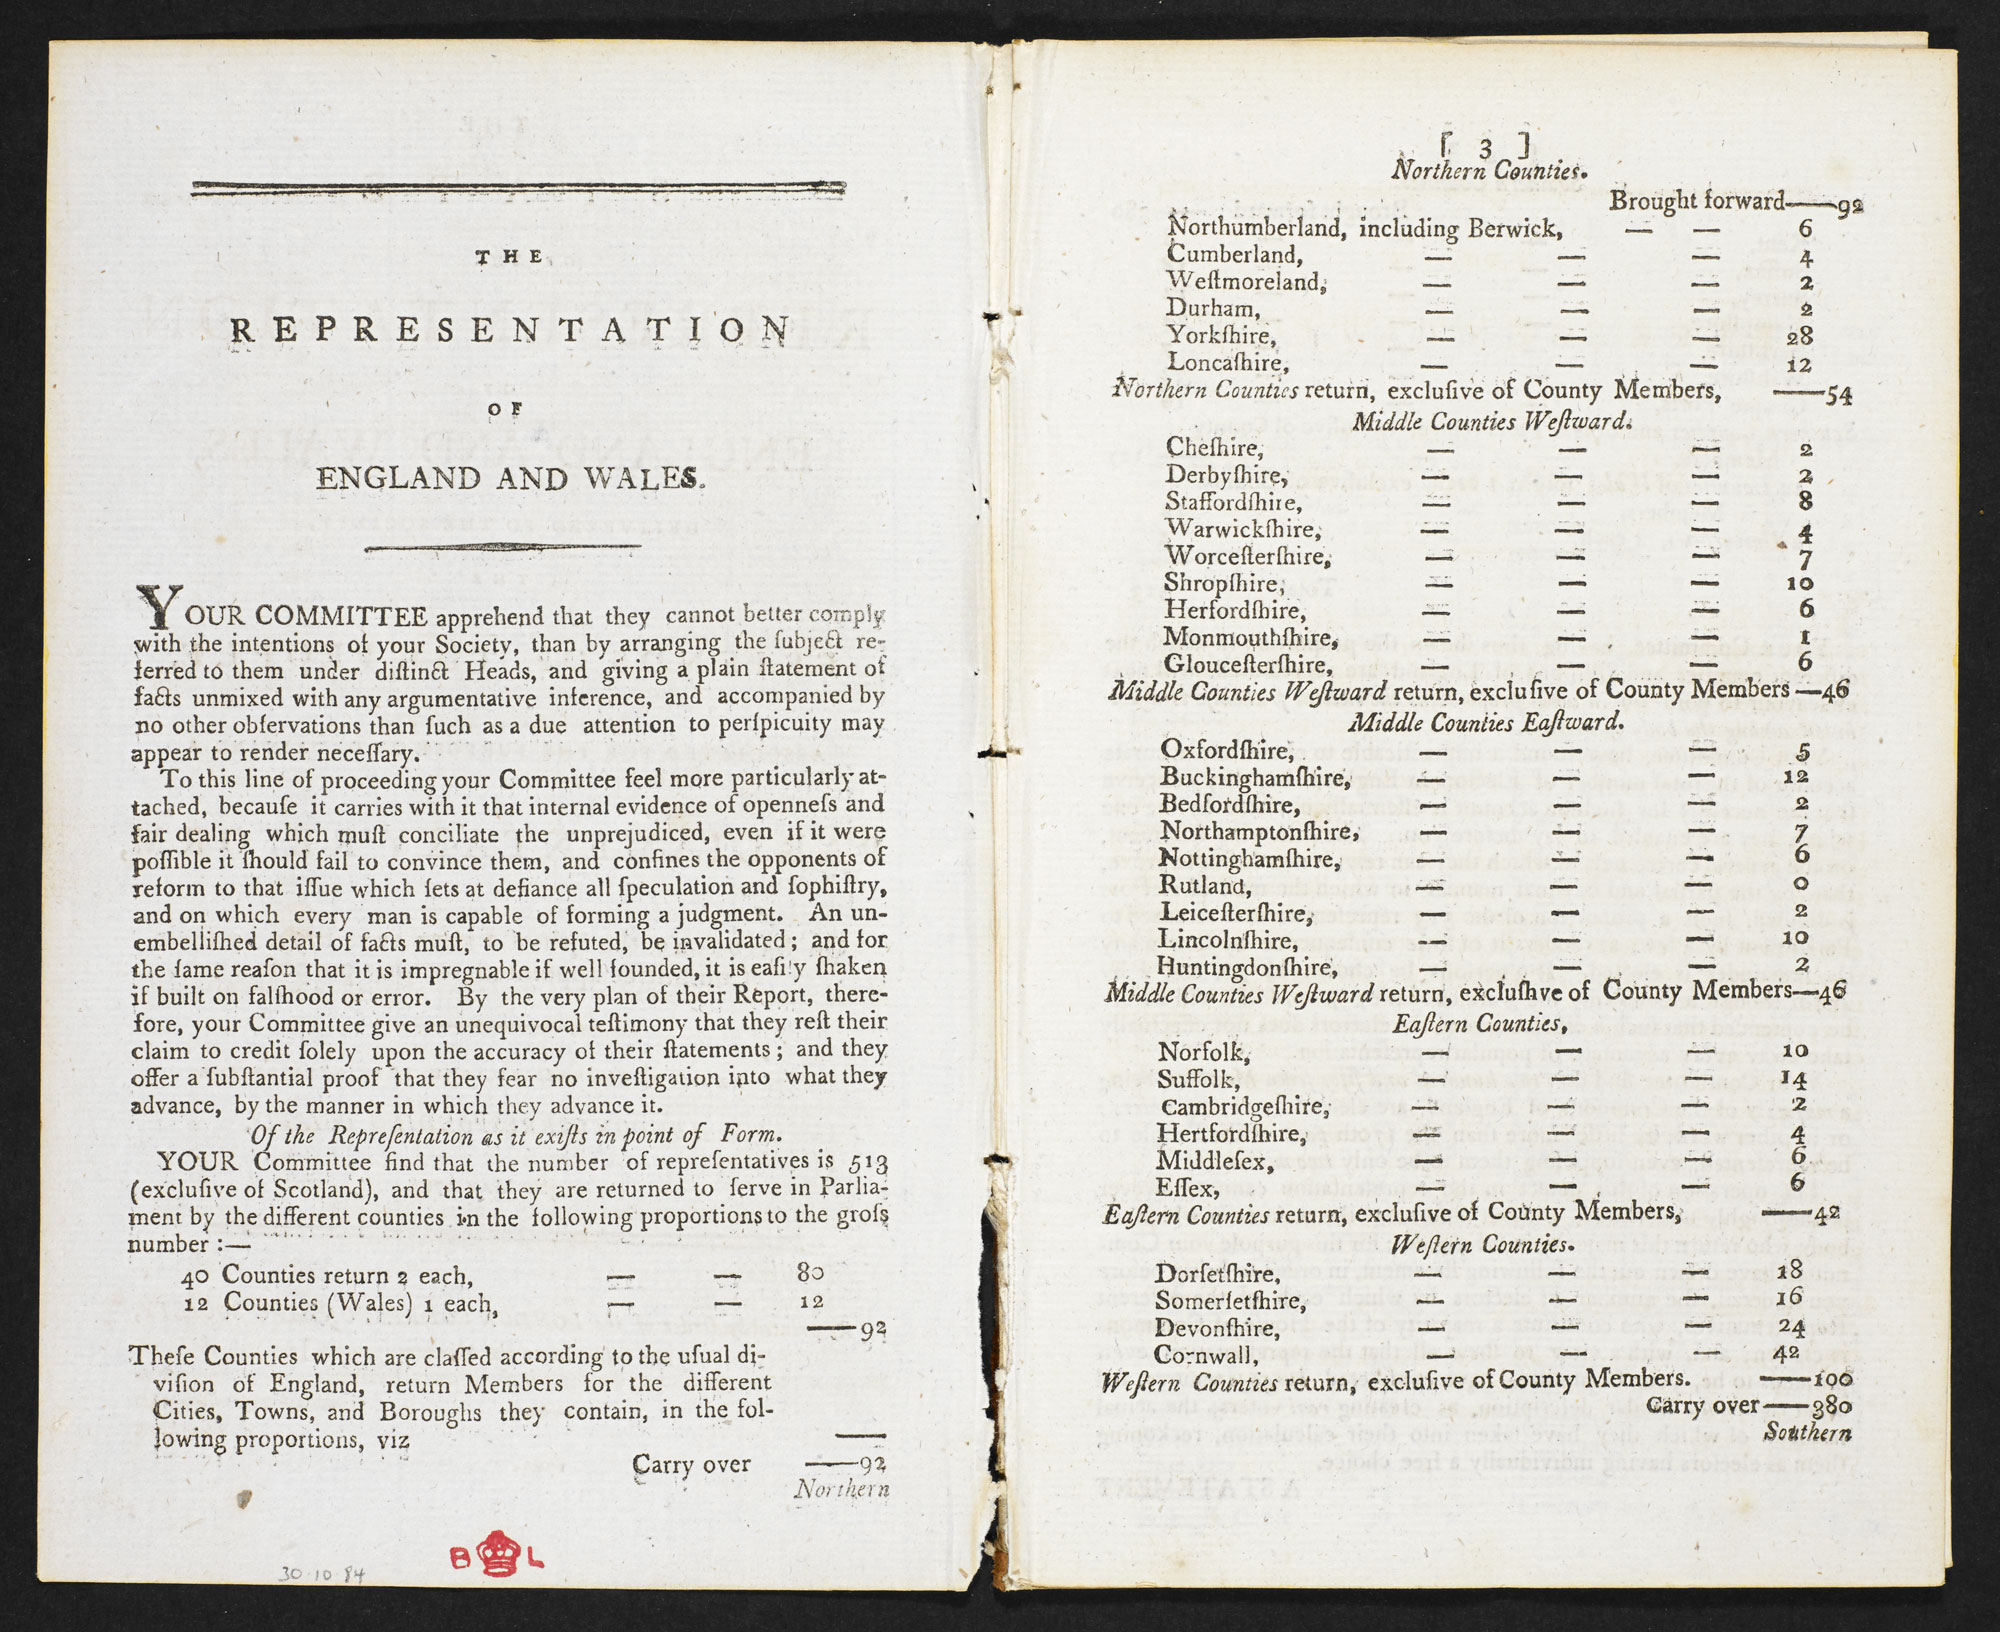 Figures for representatives from counties of England and Wales [page: 2-3]